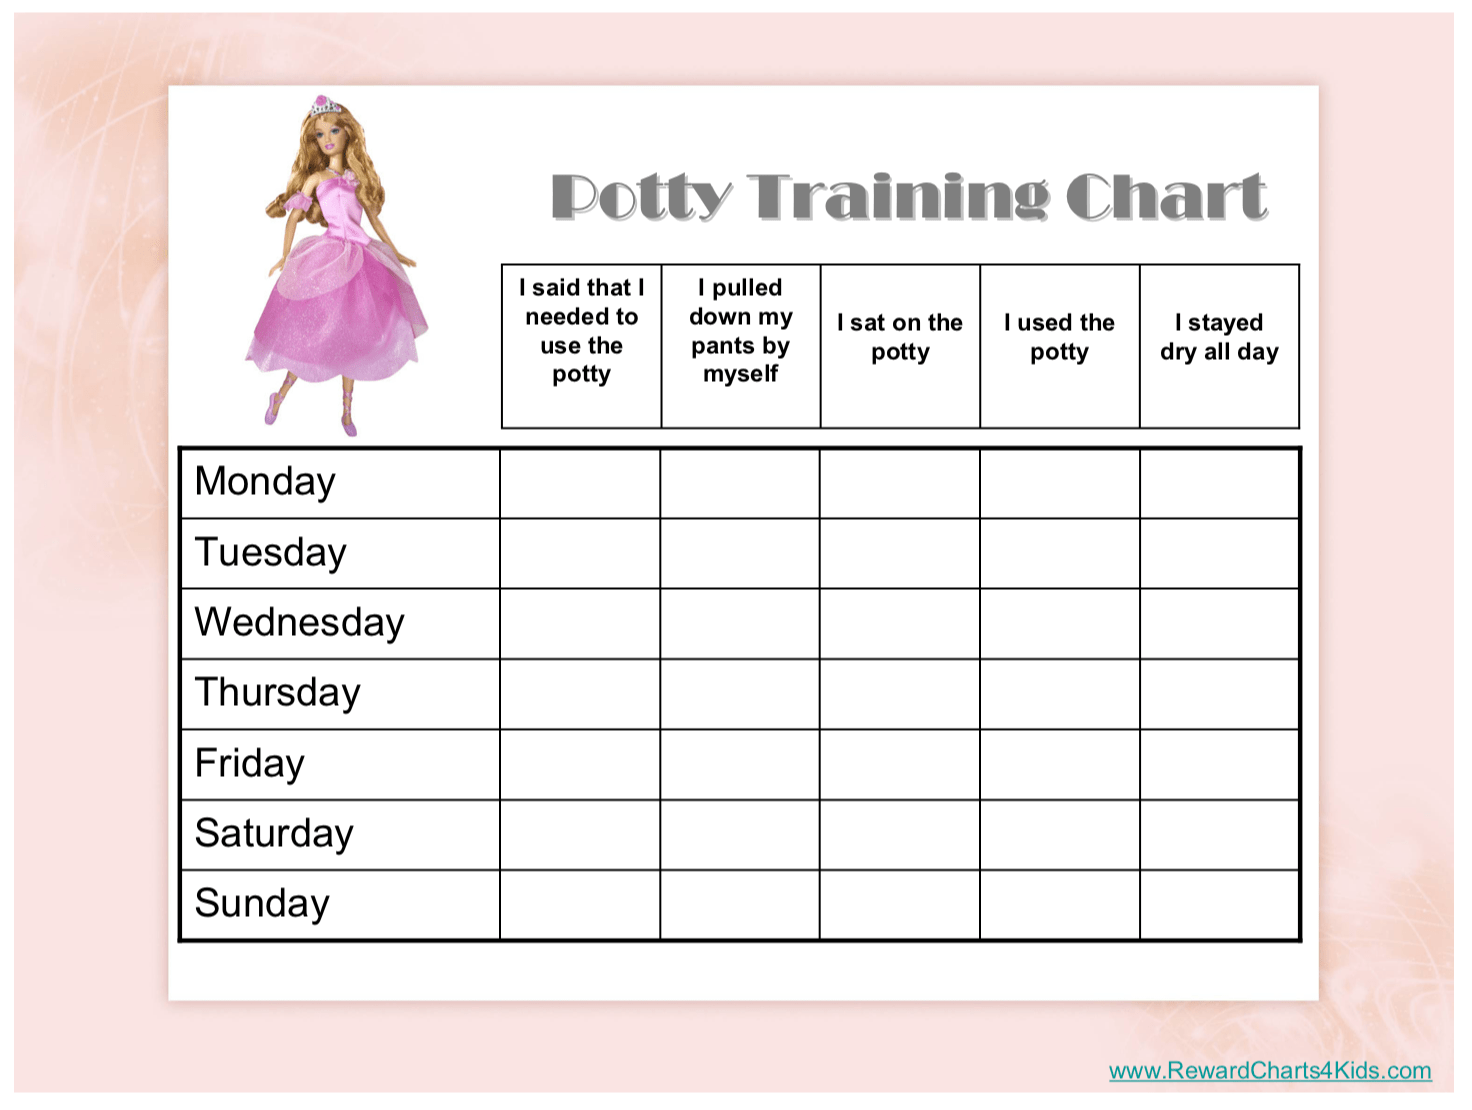 photograph relating to Potty Training Chart Printable identified as Absolutely free Printable Potty Doing exercises Charts - Prepared toward Potty!